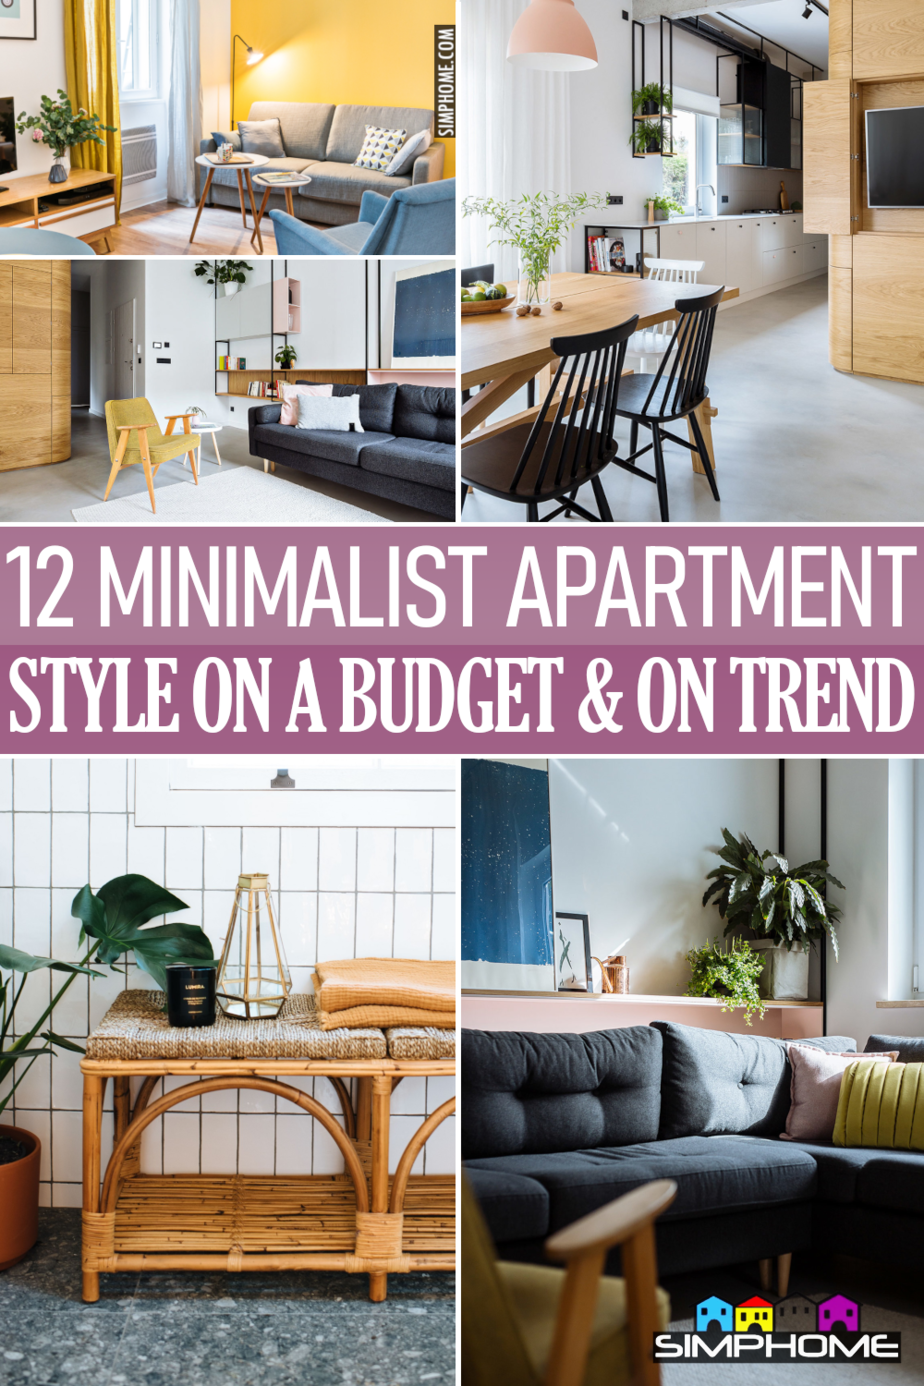 12 Minimalist Apartment Styles On a budget via Simphome.comFeatured